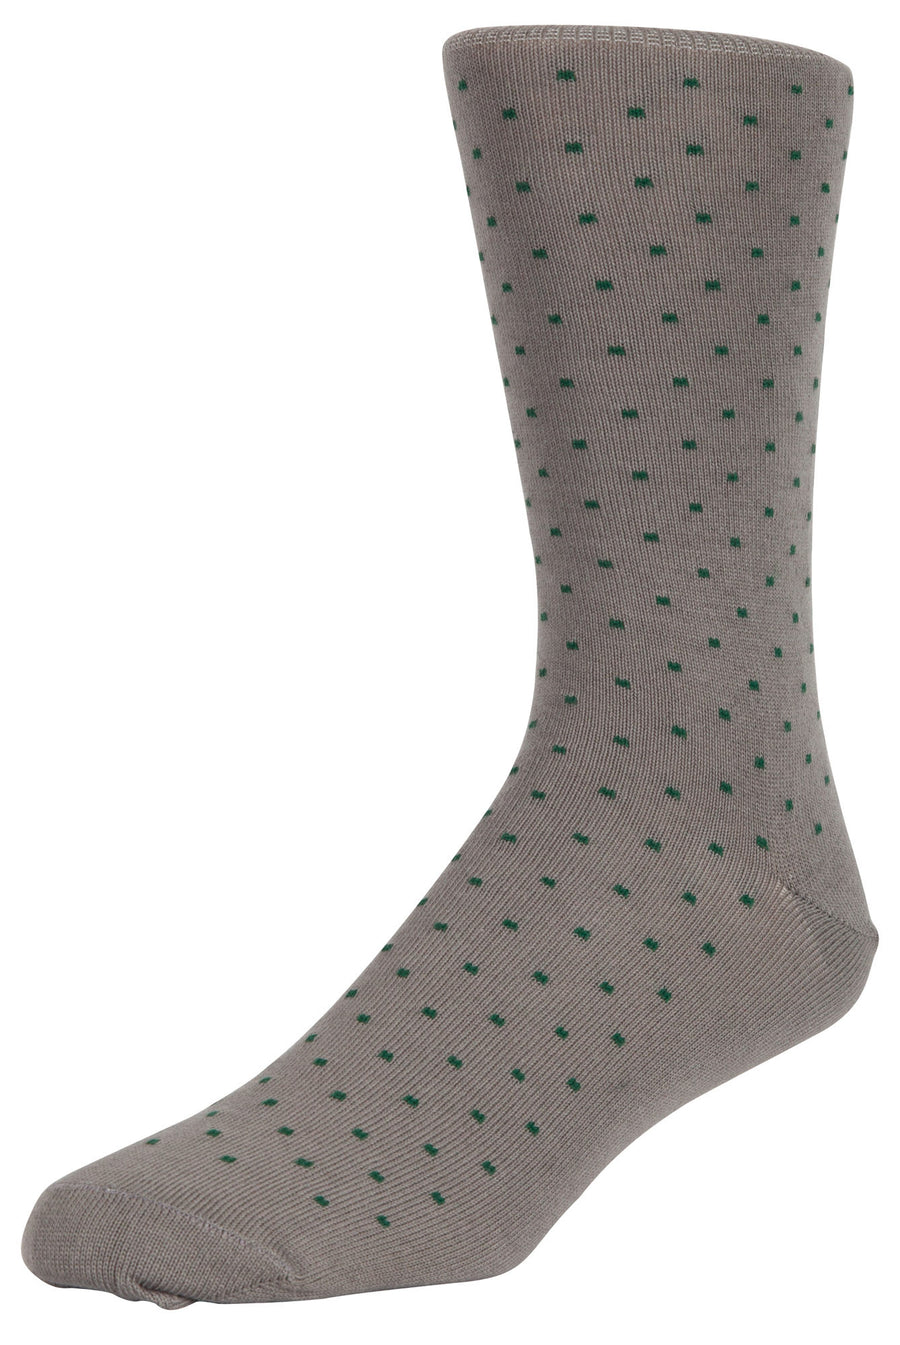 Bennett Socks in Grey